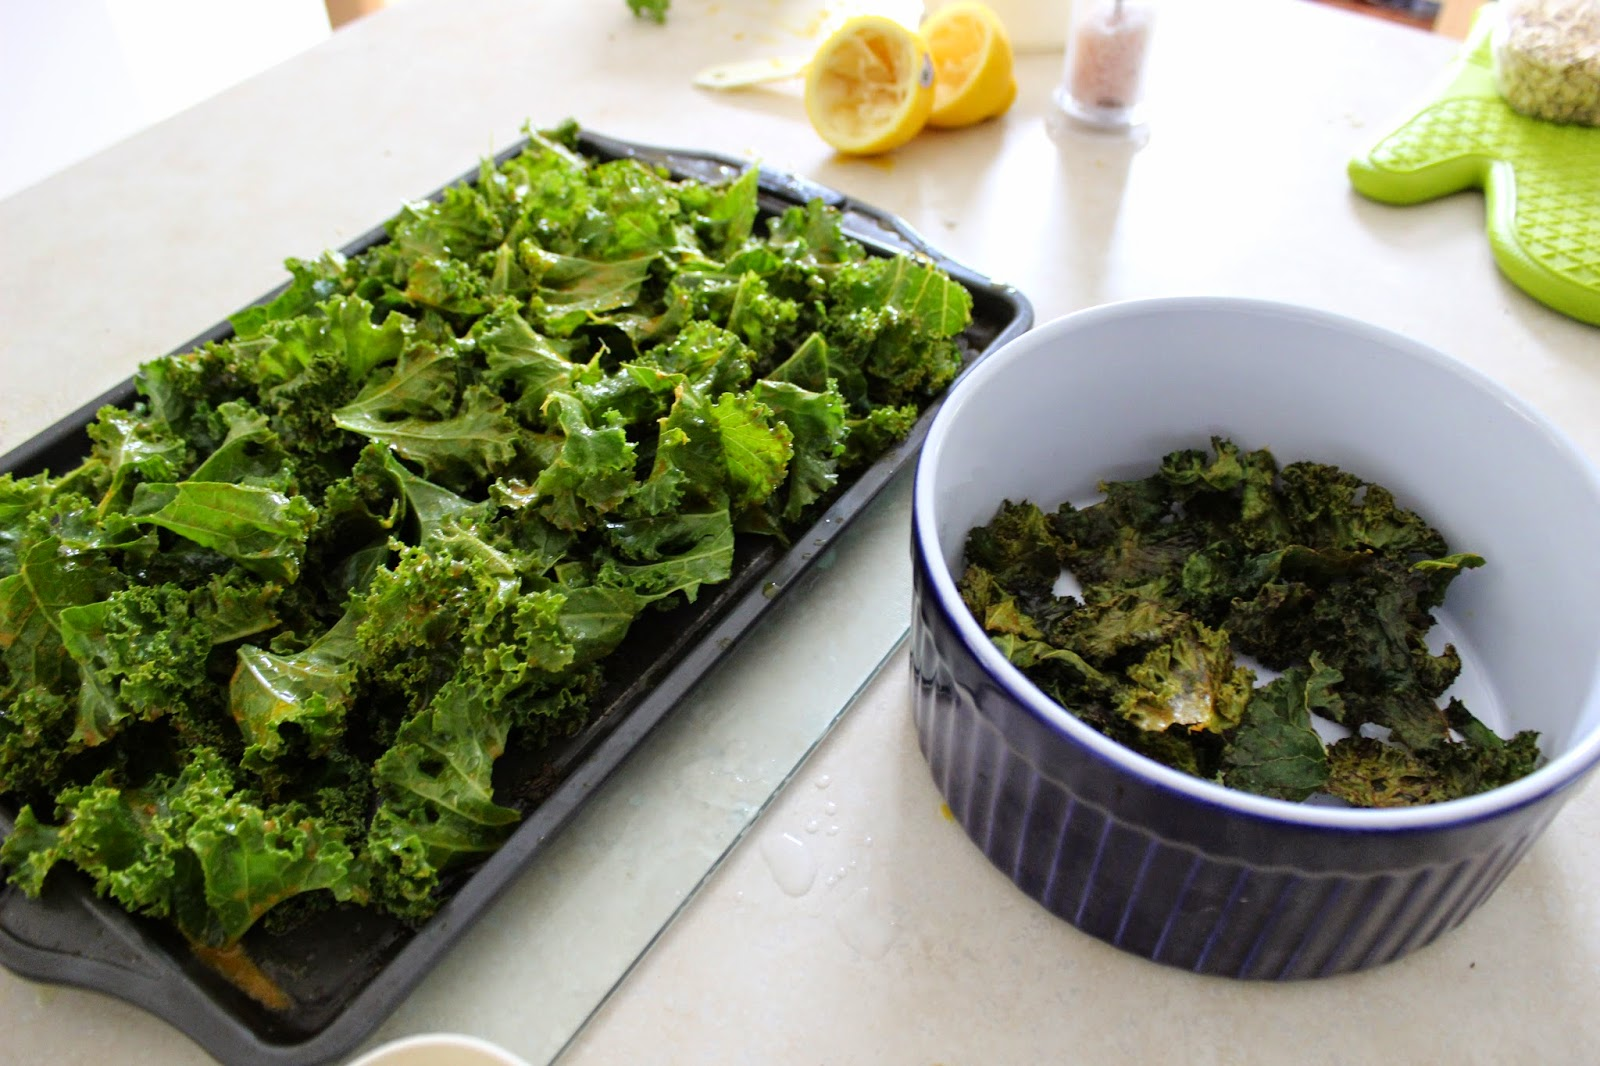 North Vancouver  Homemade Kale Chips, Yummy ♥  Recipe coming soon!